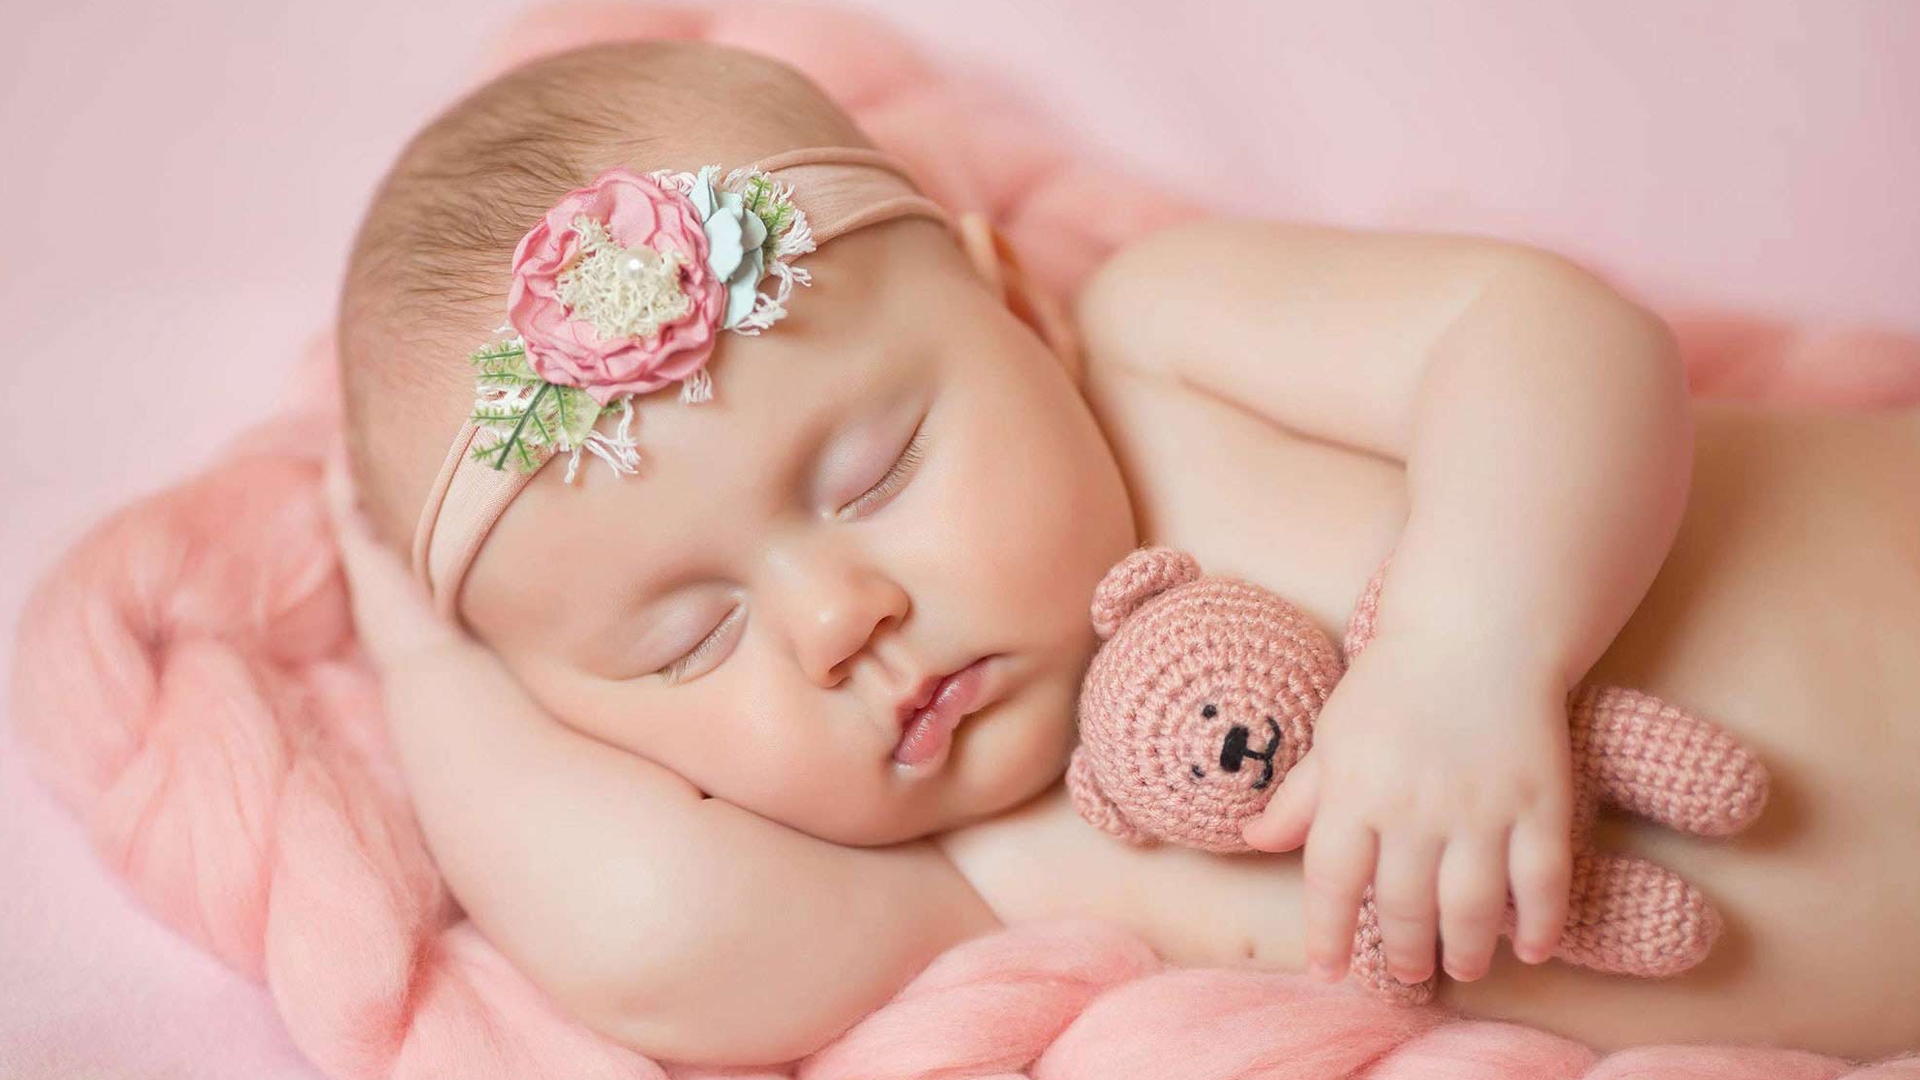 Cute Baby Boys Wallpapers Hd Pictures: Sleeping Baby Images In HD For Photo Session